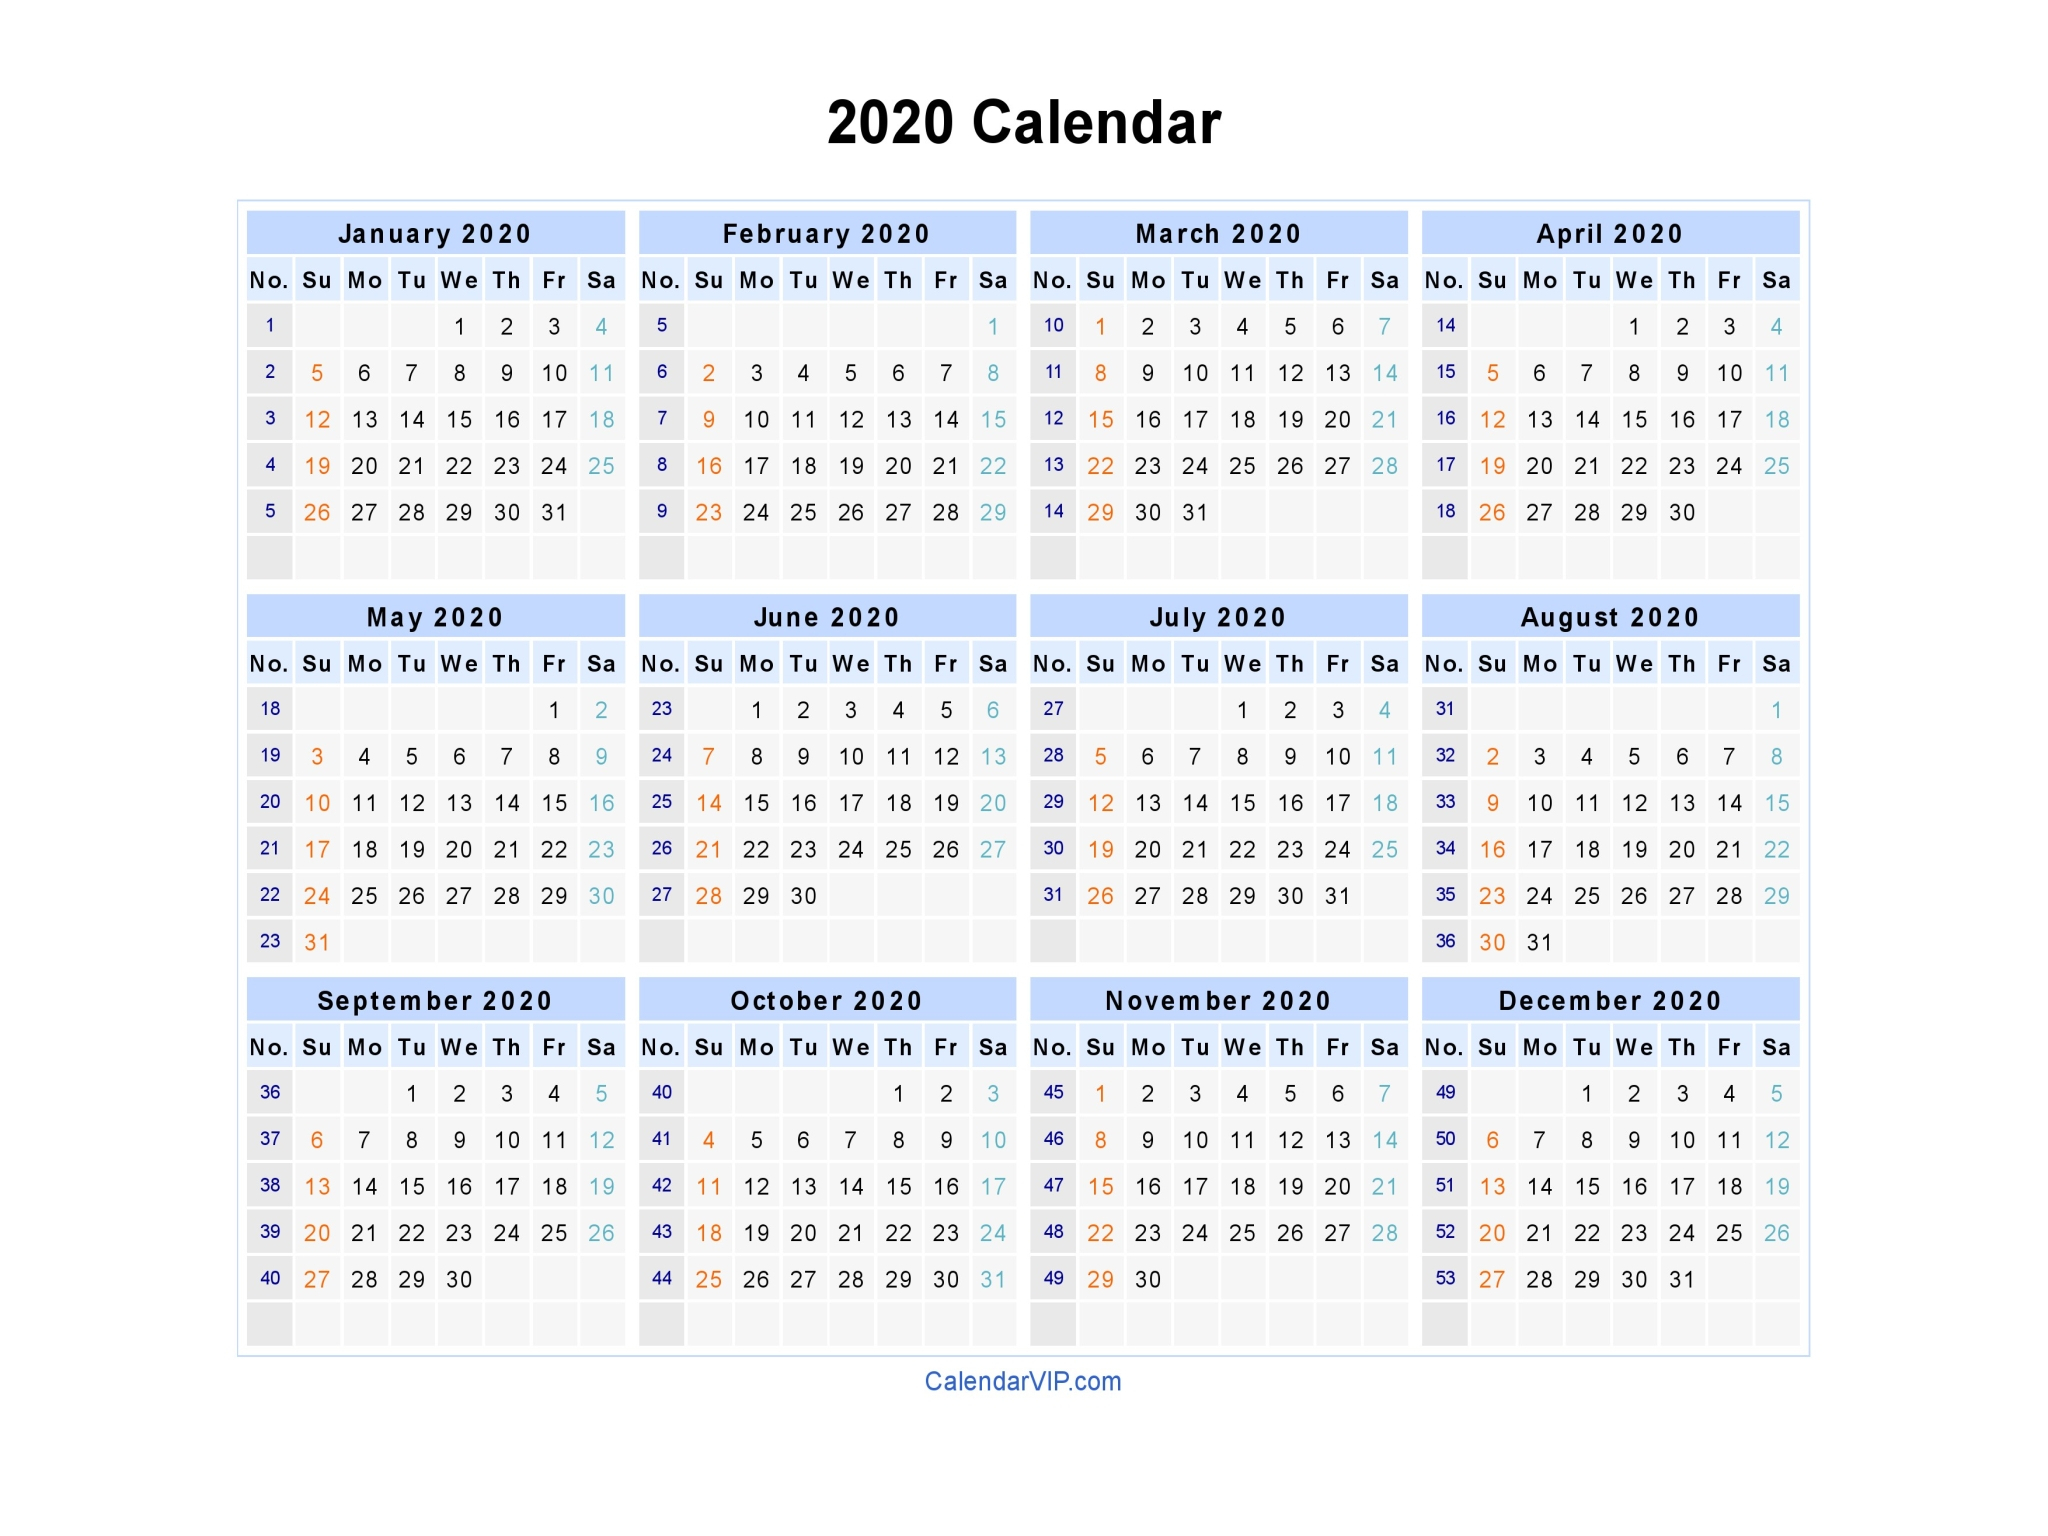 2020 Calendar - Blank Printable Calendar Template In Pdf Word Excel for 2020 Calendar With Week Numbers In Excel